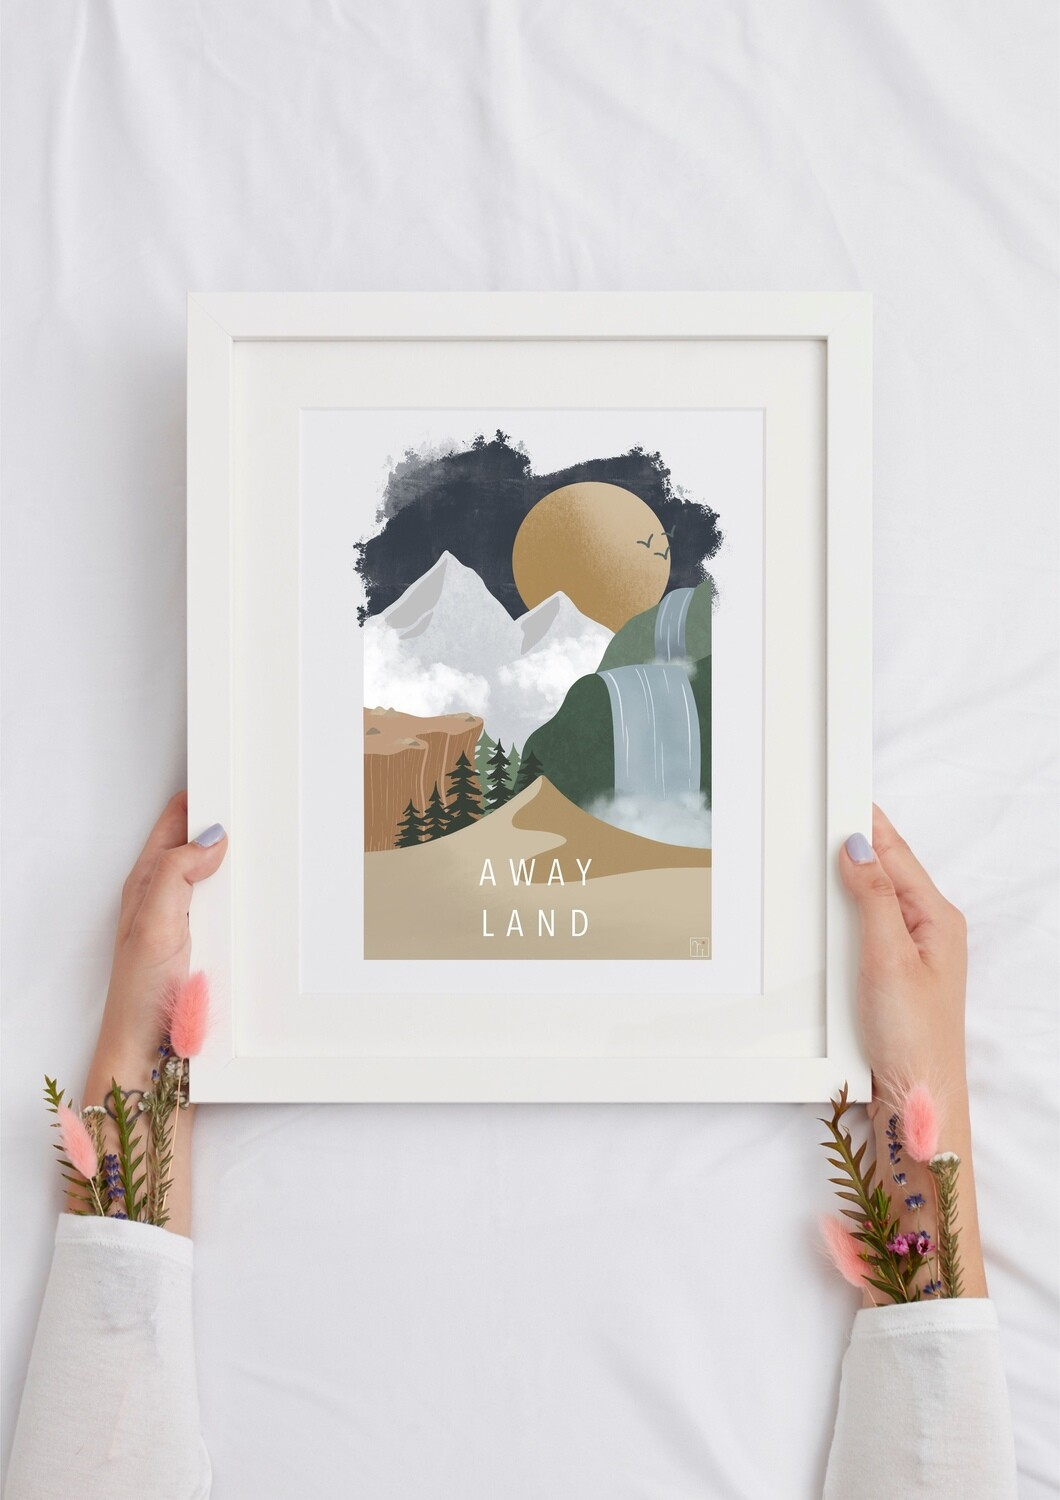 AWAY LAND Art Print